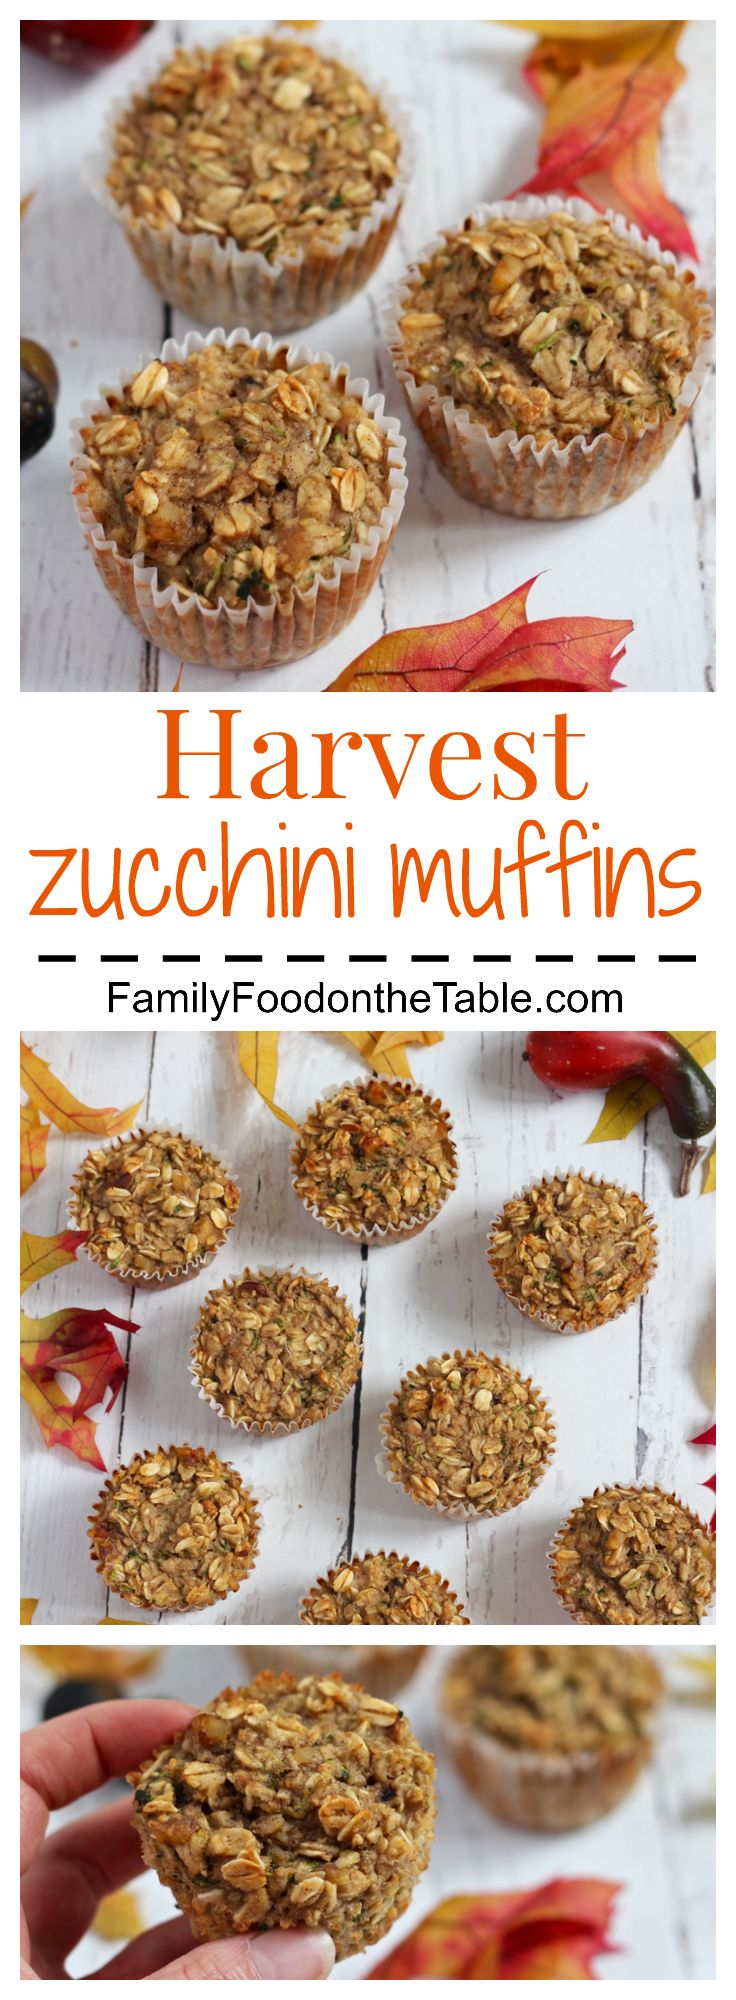 Harvest zucchini muffins are packed with wholesome goodness! And they're…